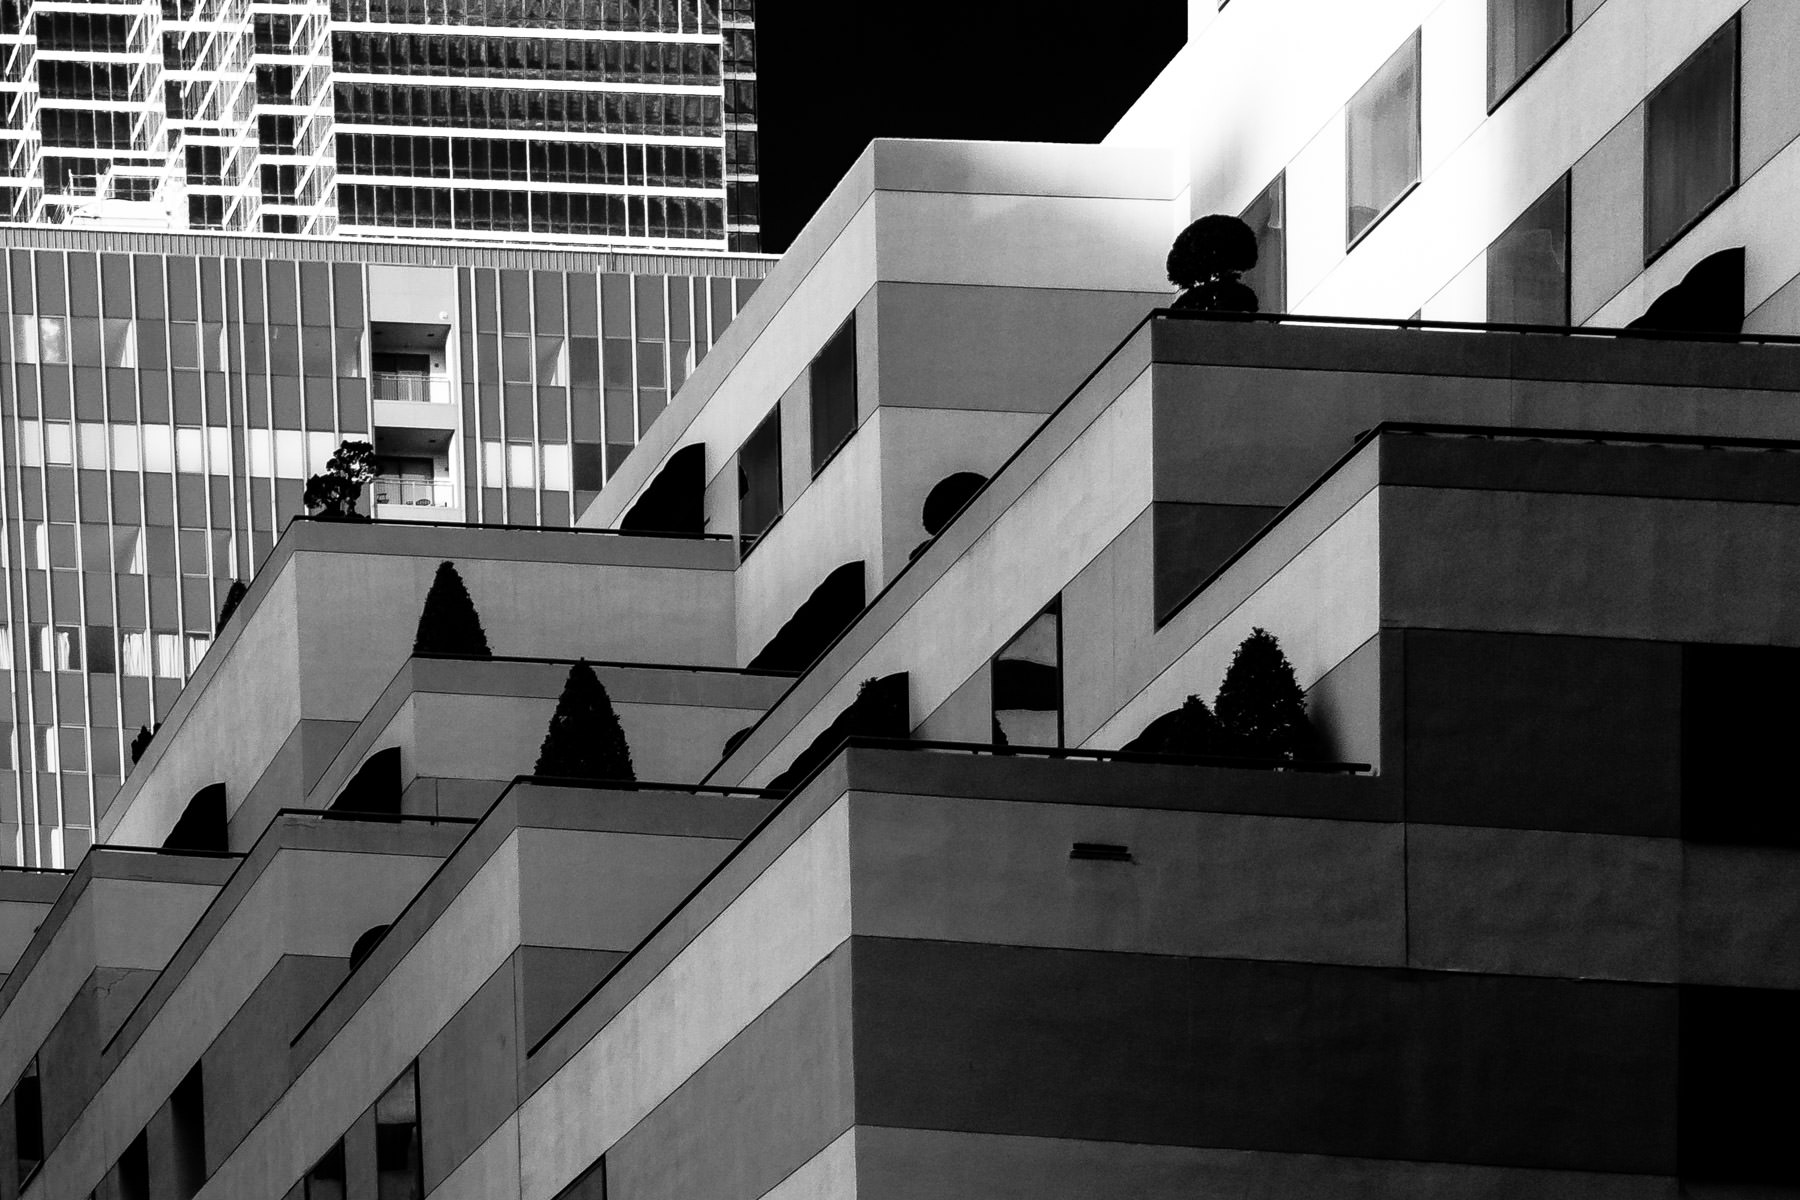 Balconies on a building in Downtown Dallas.